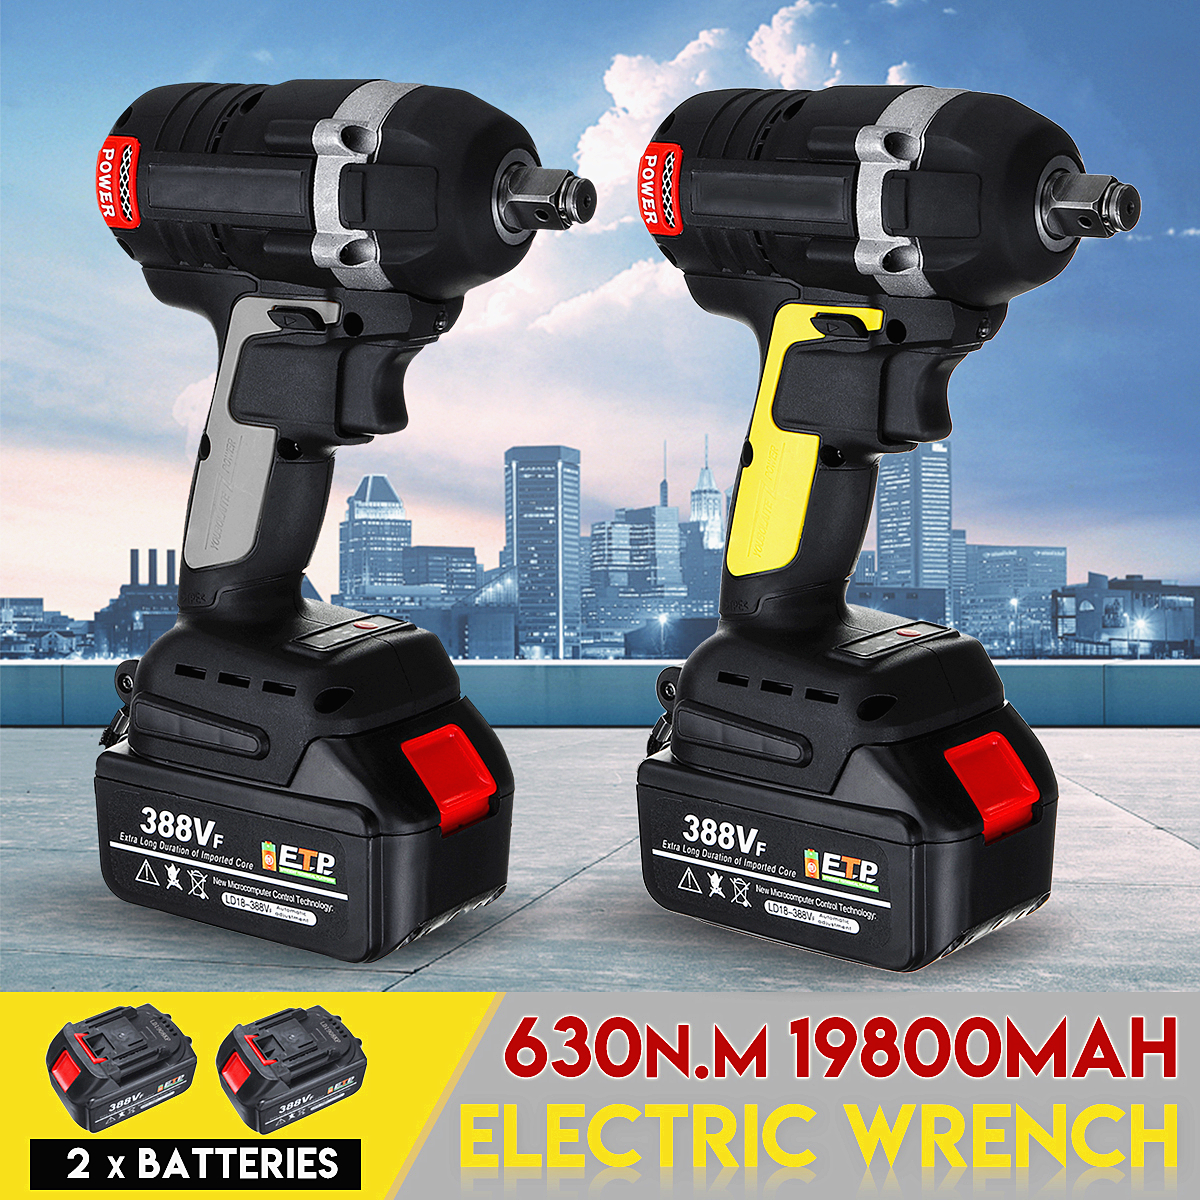 Upgraded 630NM 388VF 19800mAh Rechargeable Brushless Cordless Electric Impact Wrench 3 in 1 with 2 Li ion Battery Power Tools|Electric Wrenches|   - AliExpress